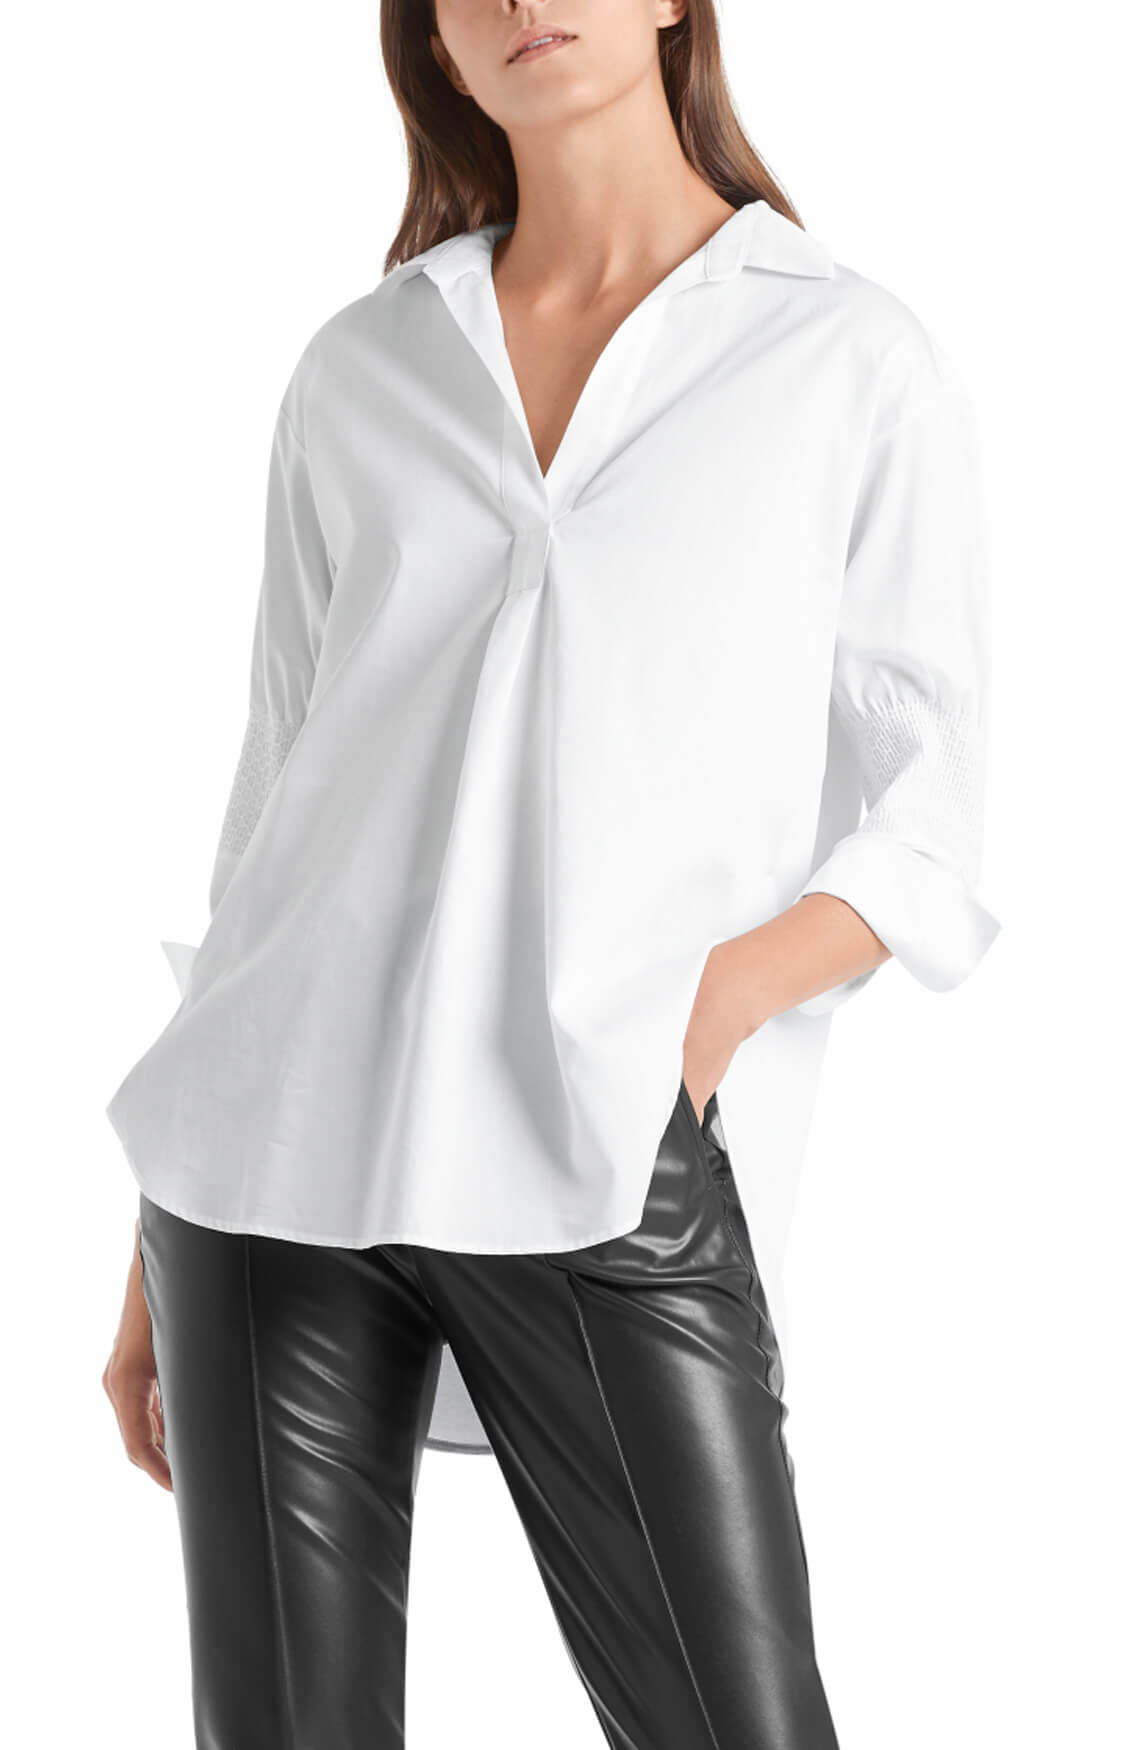 Marccain Dames Blouse met smokwerk Wit